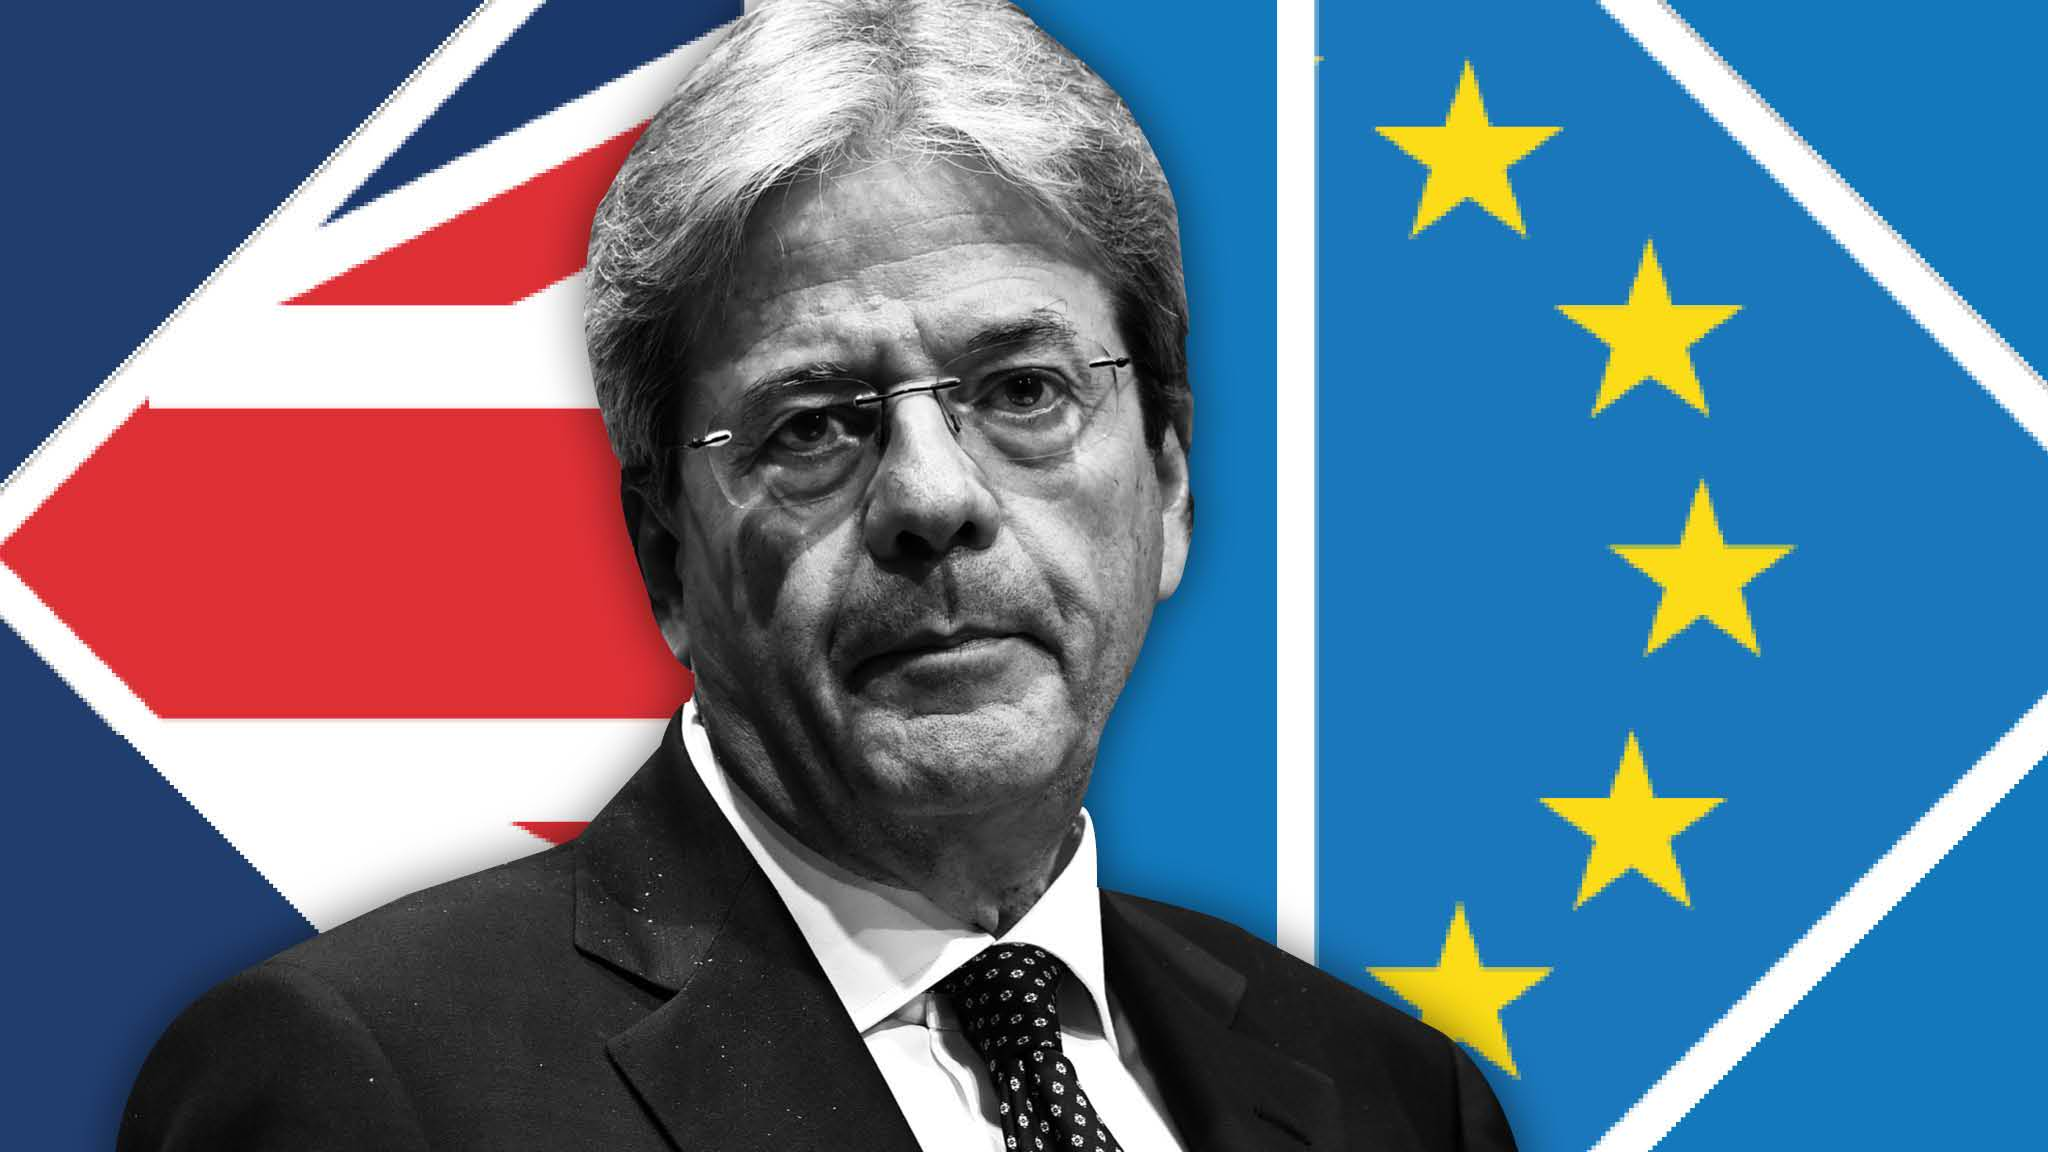 Italy's Paolo Gentiloni calls for 'tailor-made' UK-EU trade deal